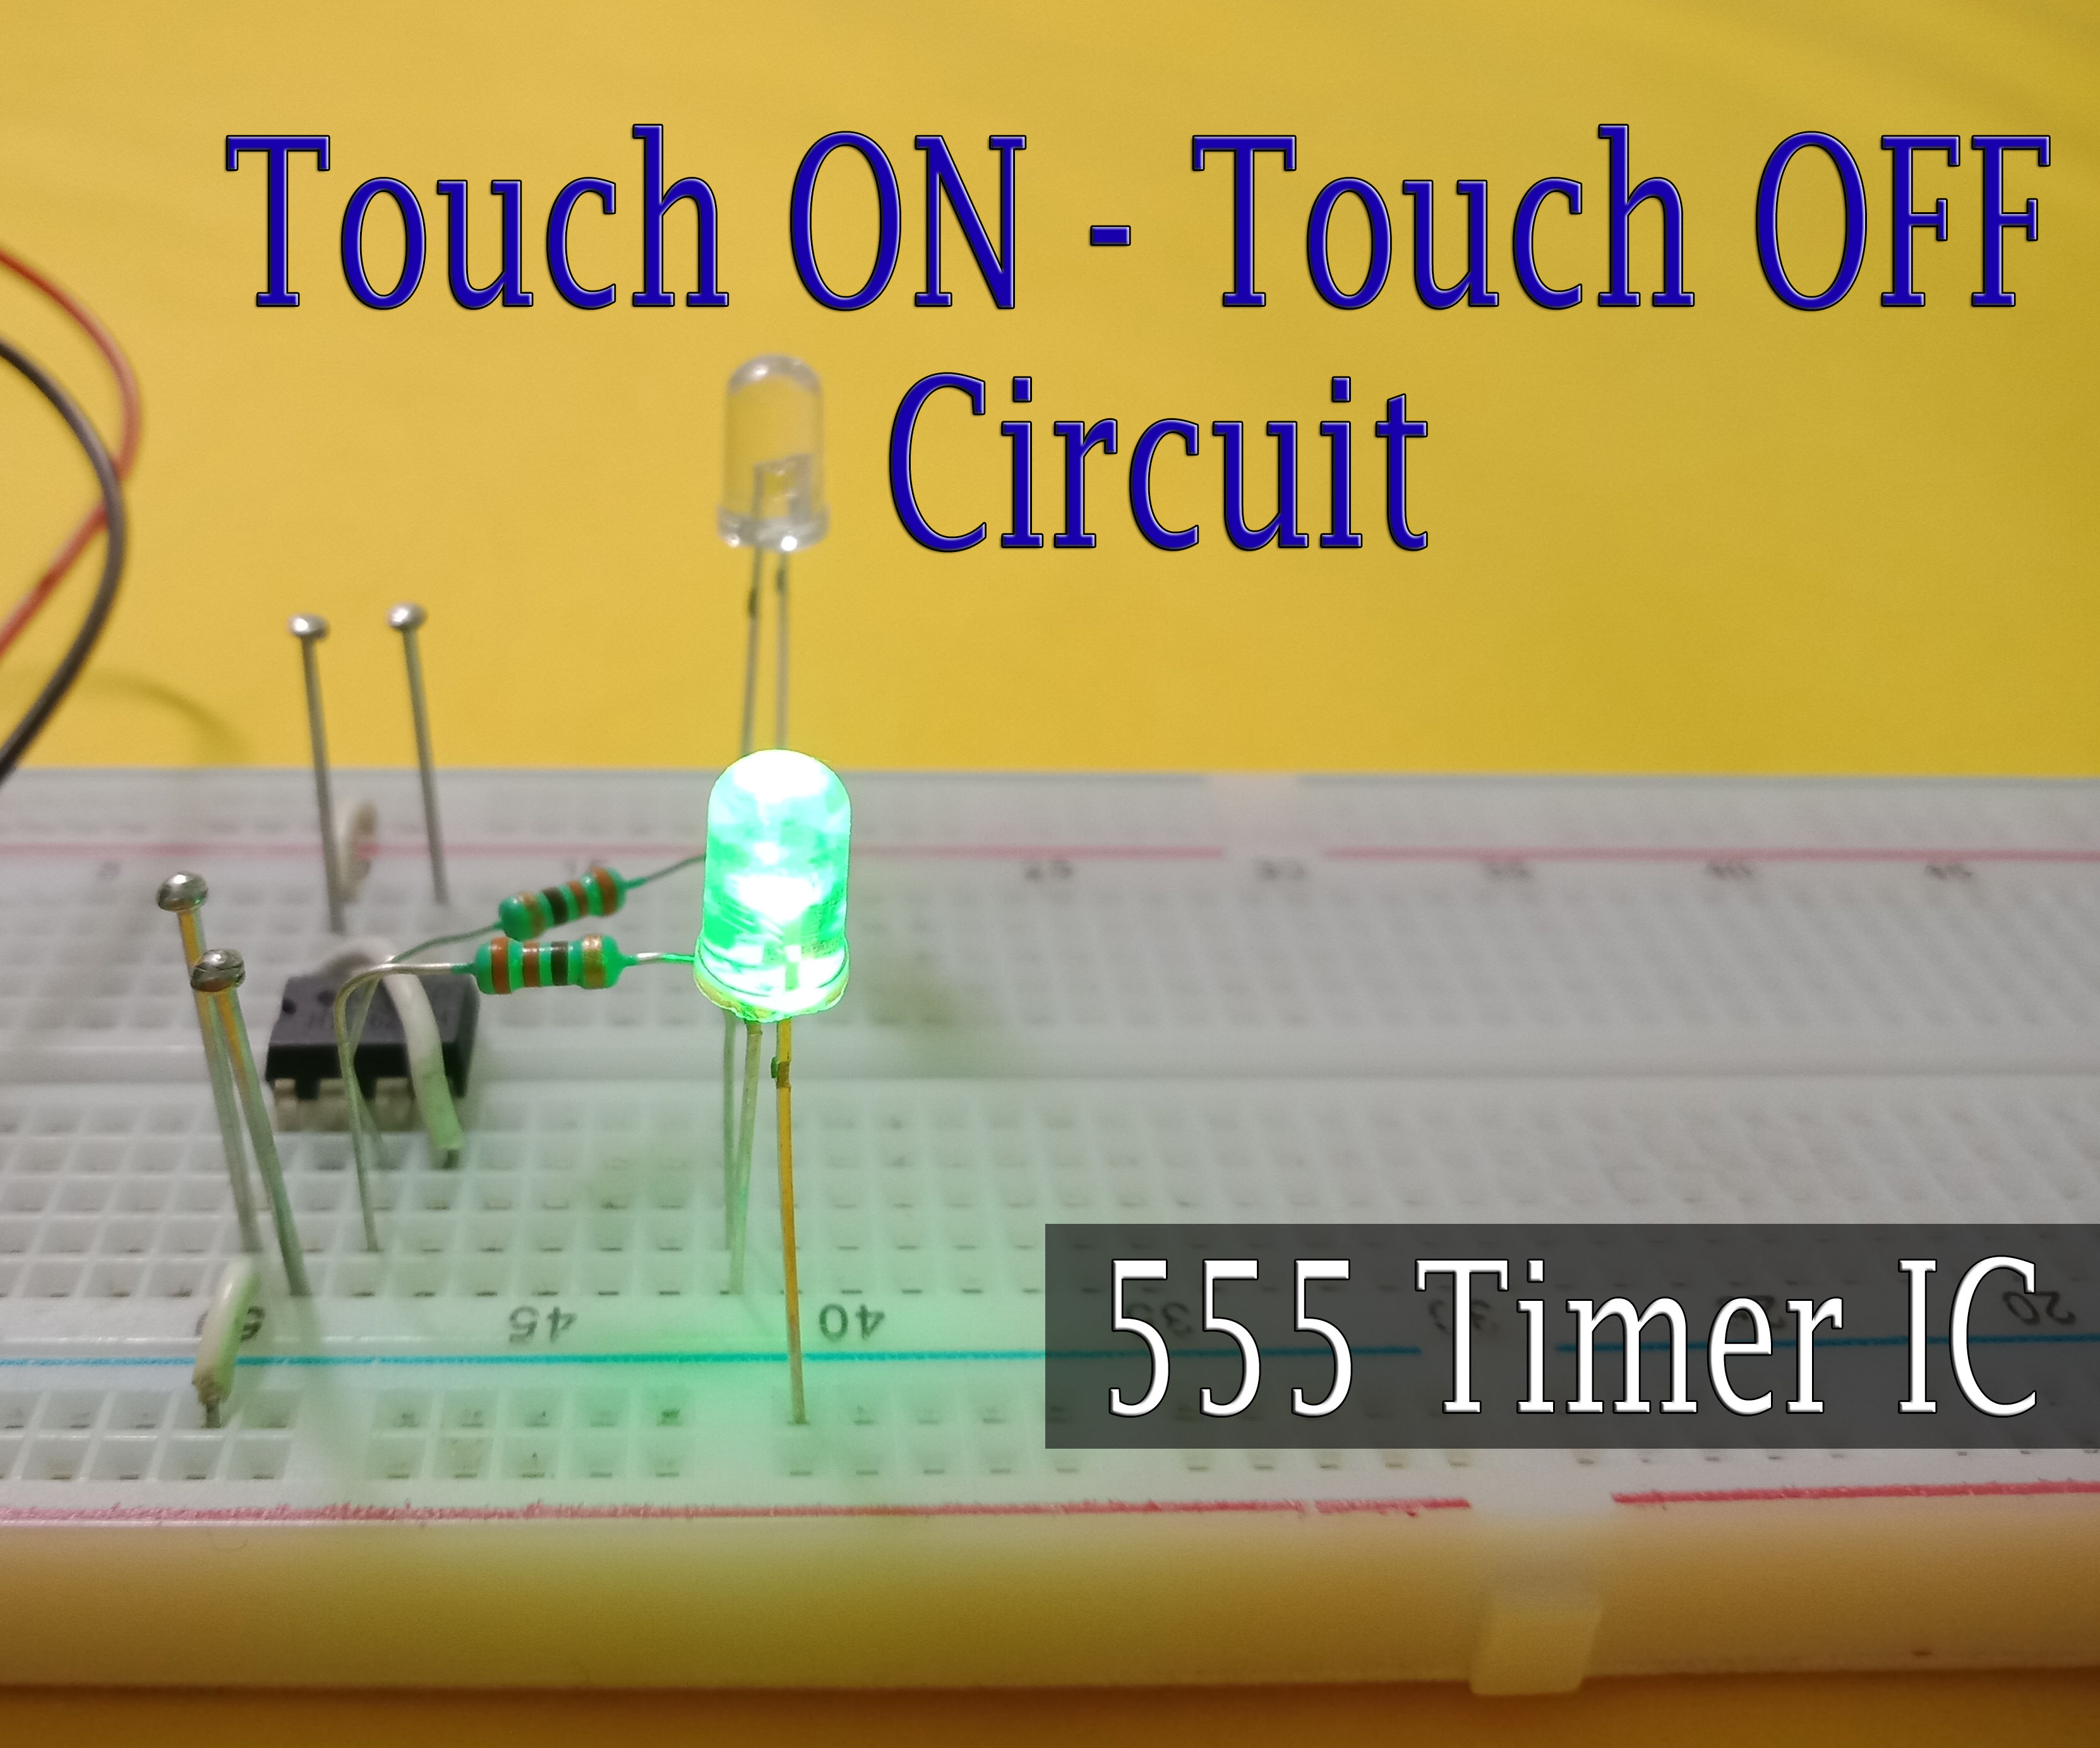 Touch ON - Touch OFF Circuit + Touch Toggle Circuit